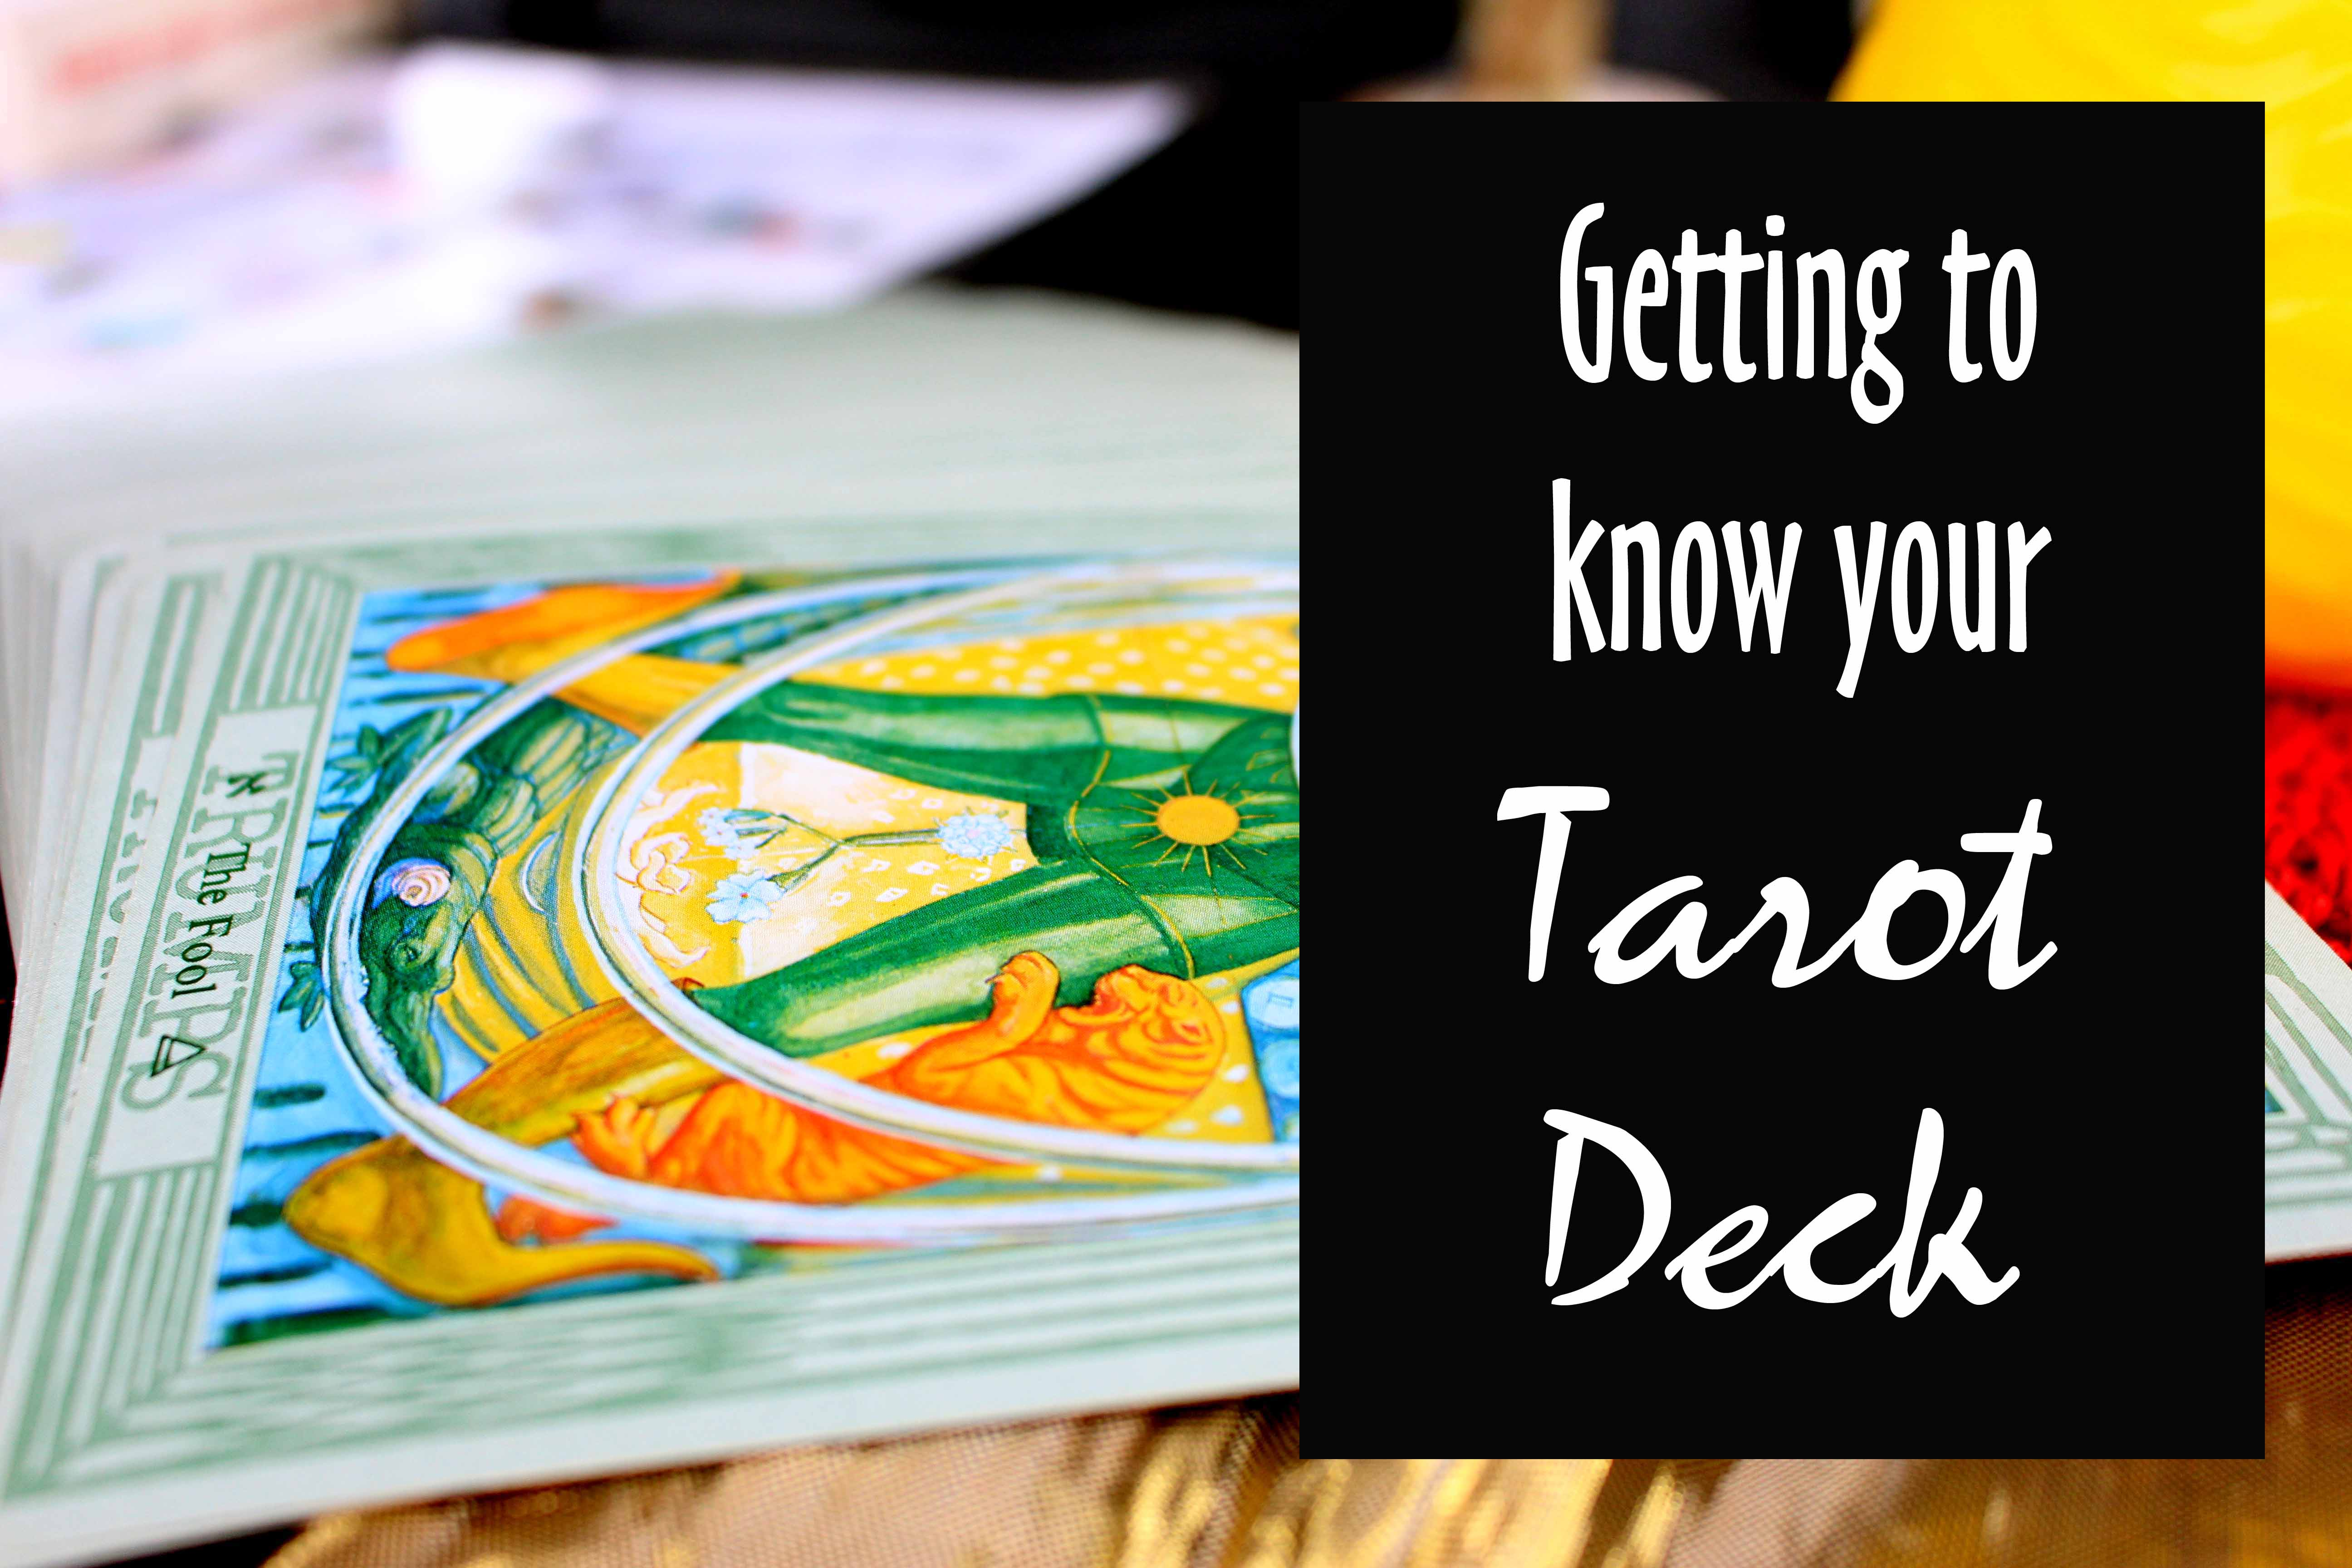 A guide to getting to know your tarot deck from the beginning.